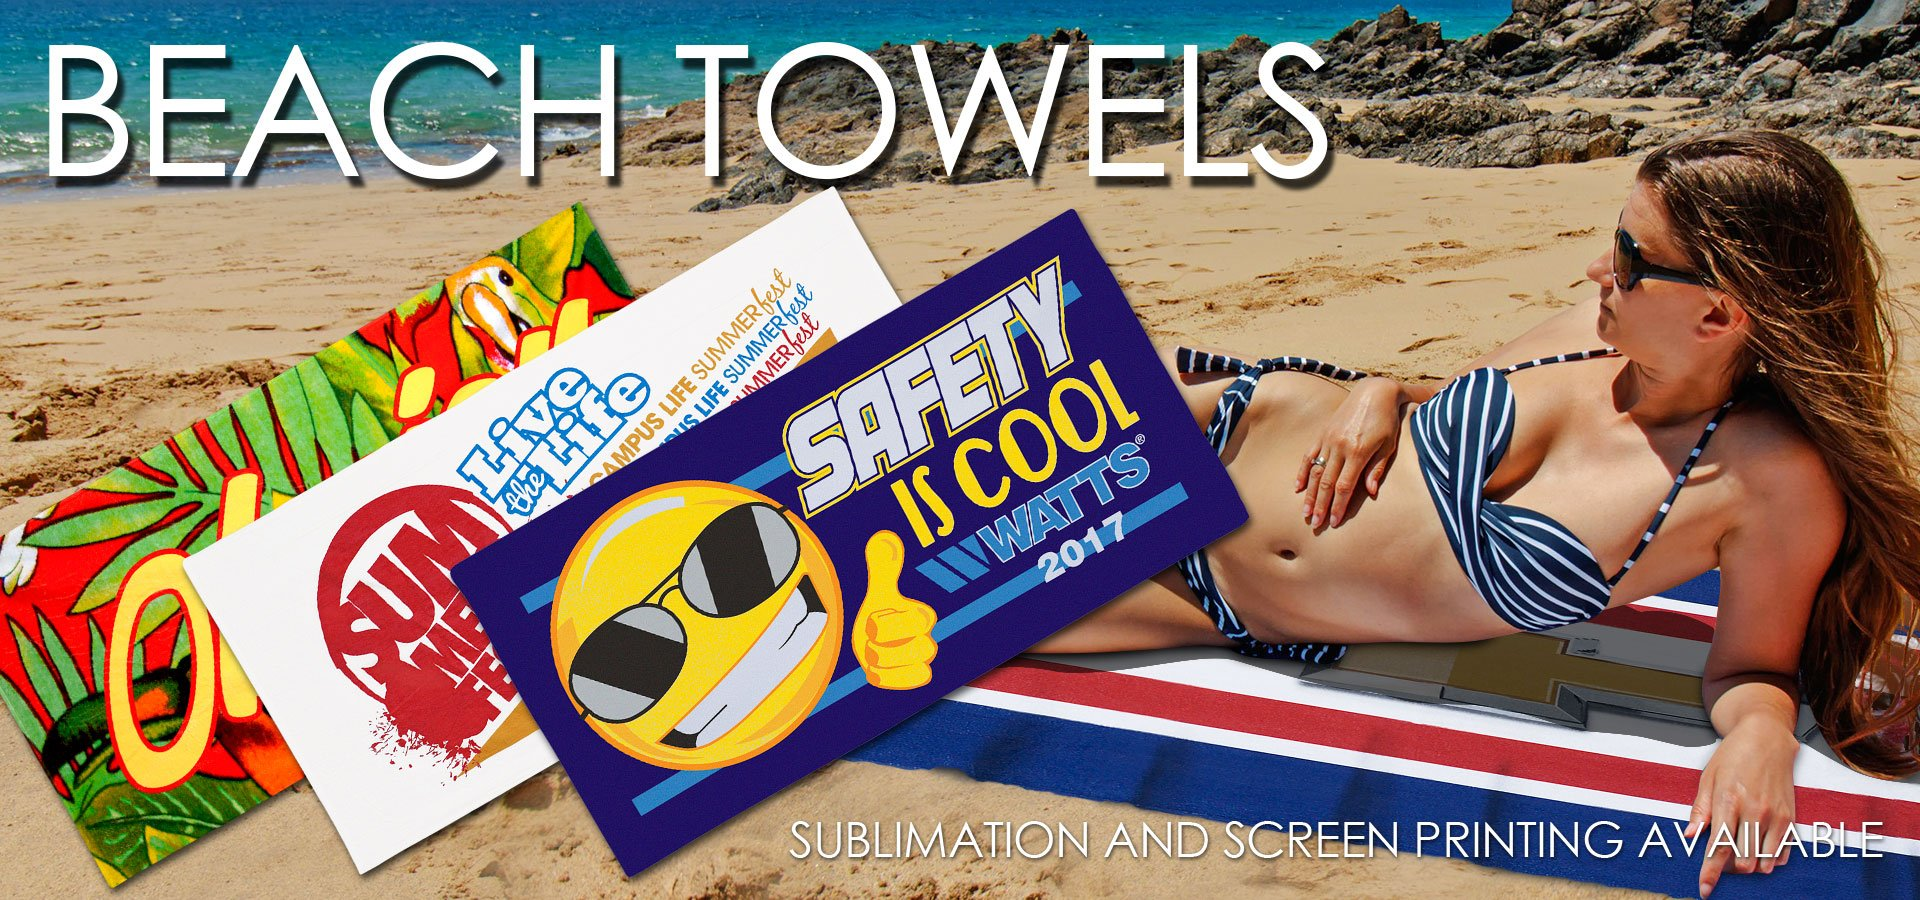 Best Printed Beach Towel selection in the Industry